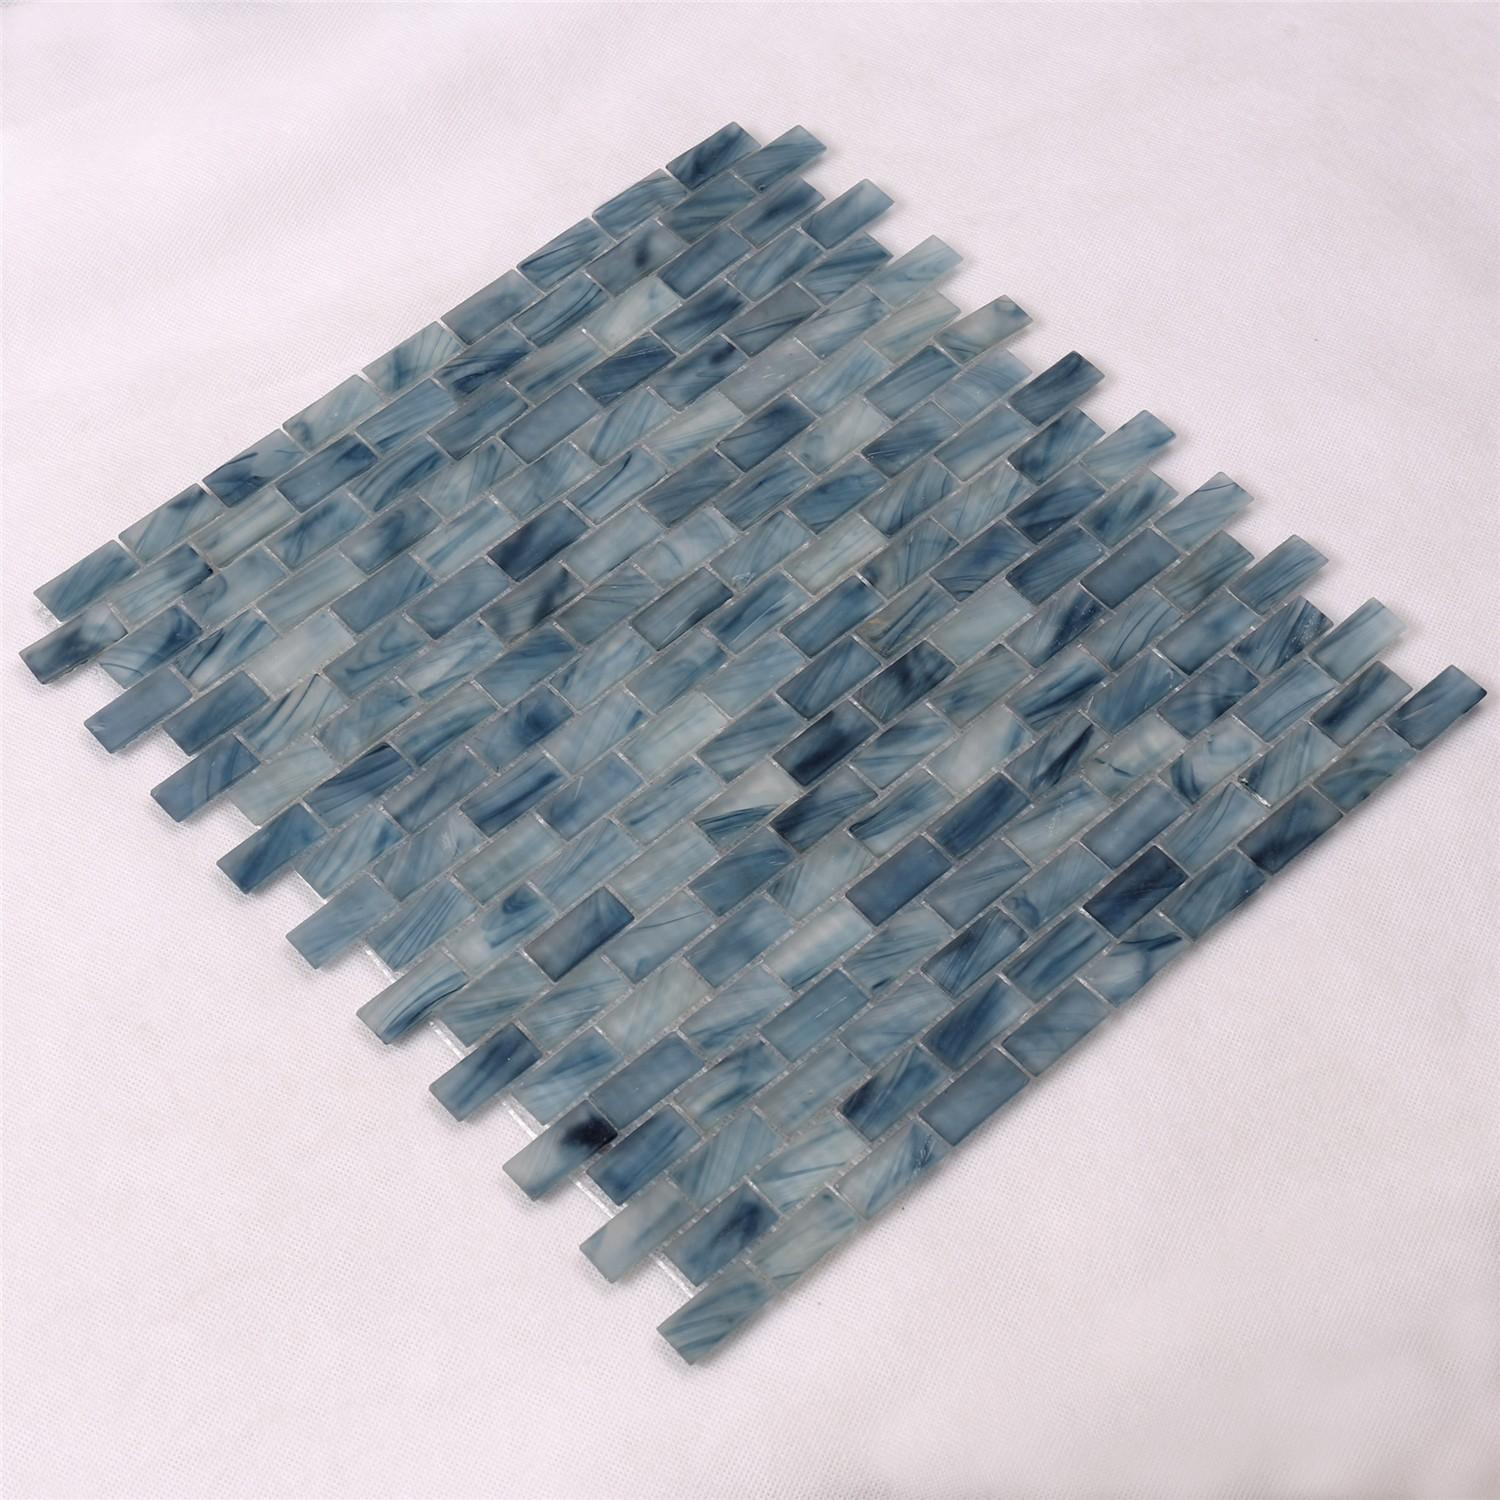 Heng Xing 4csb33 swimming pool tile pictures for business for fountain-2